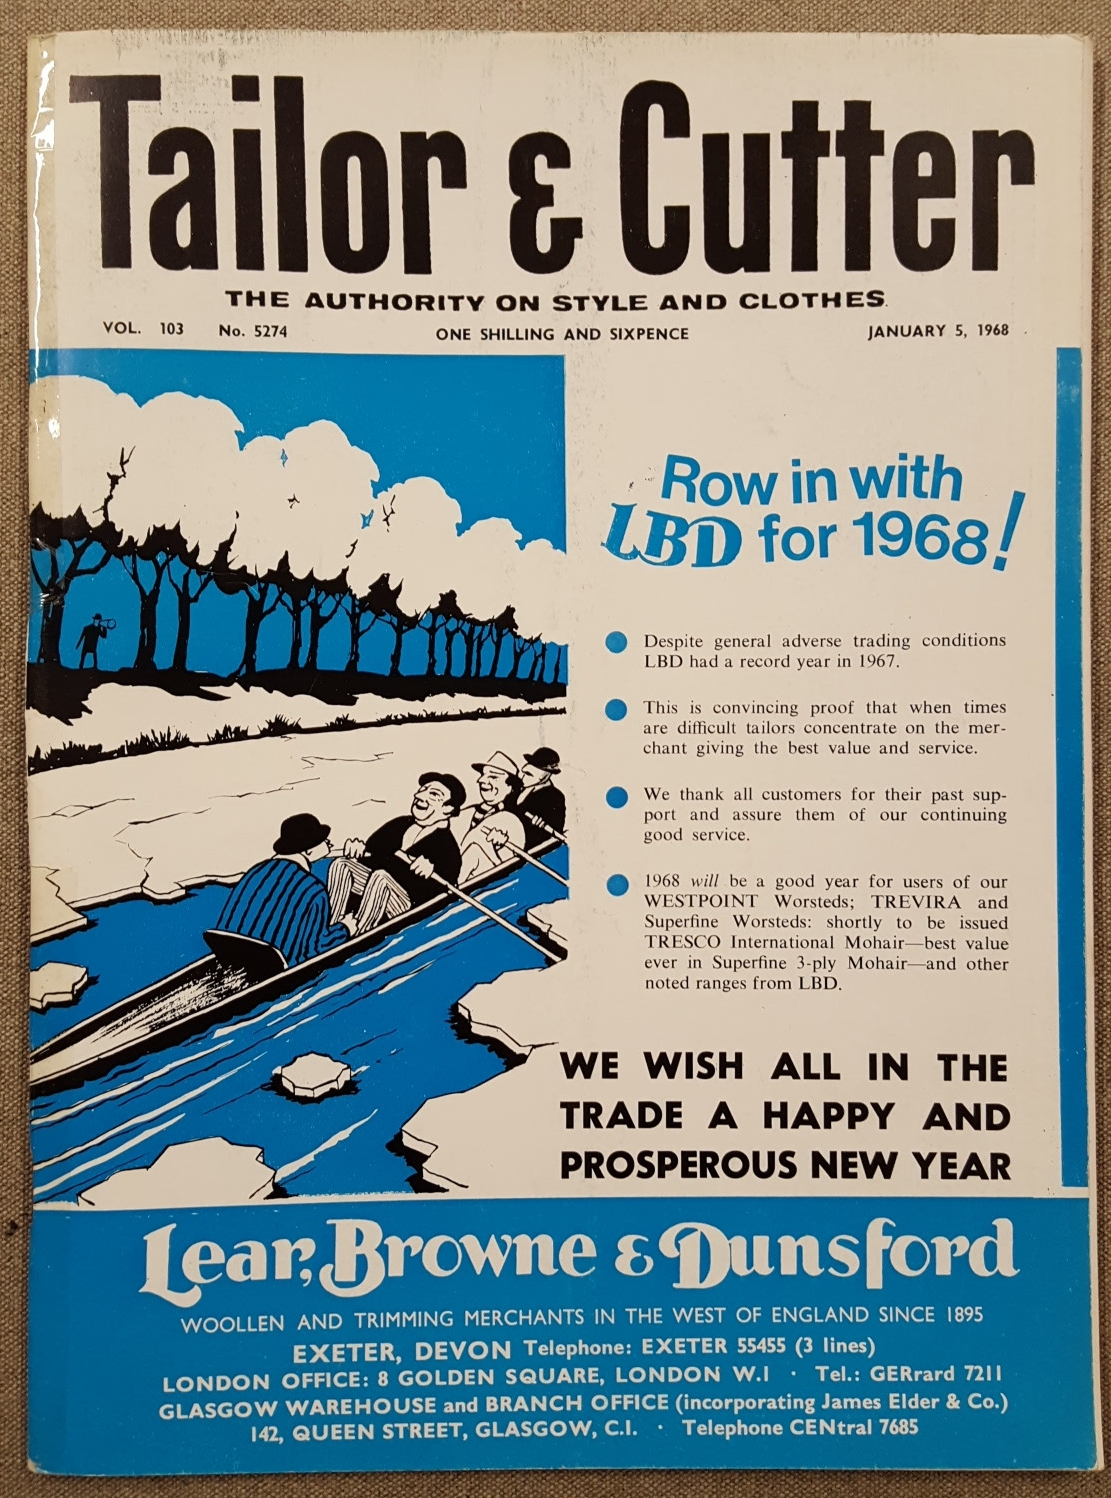 The January 5, 1968 Copy featuring an advert from Lear, Browne & Dunsford. Now Part of the Harrisons of Edinburgh group.